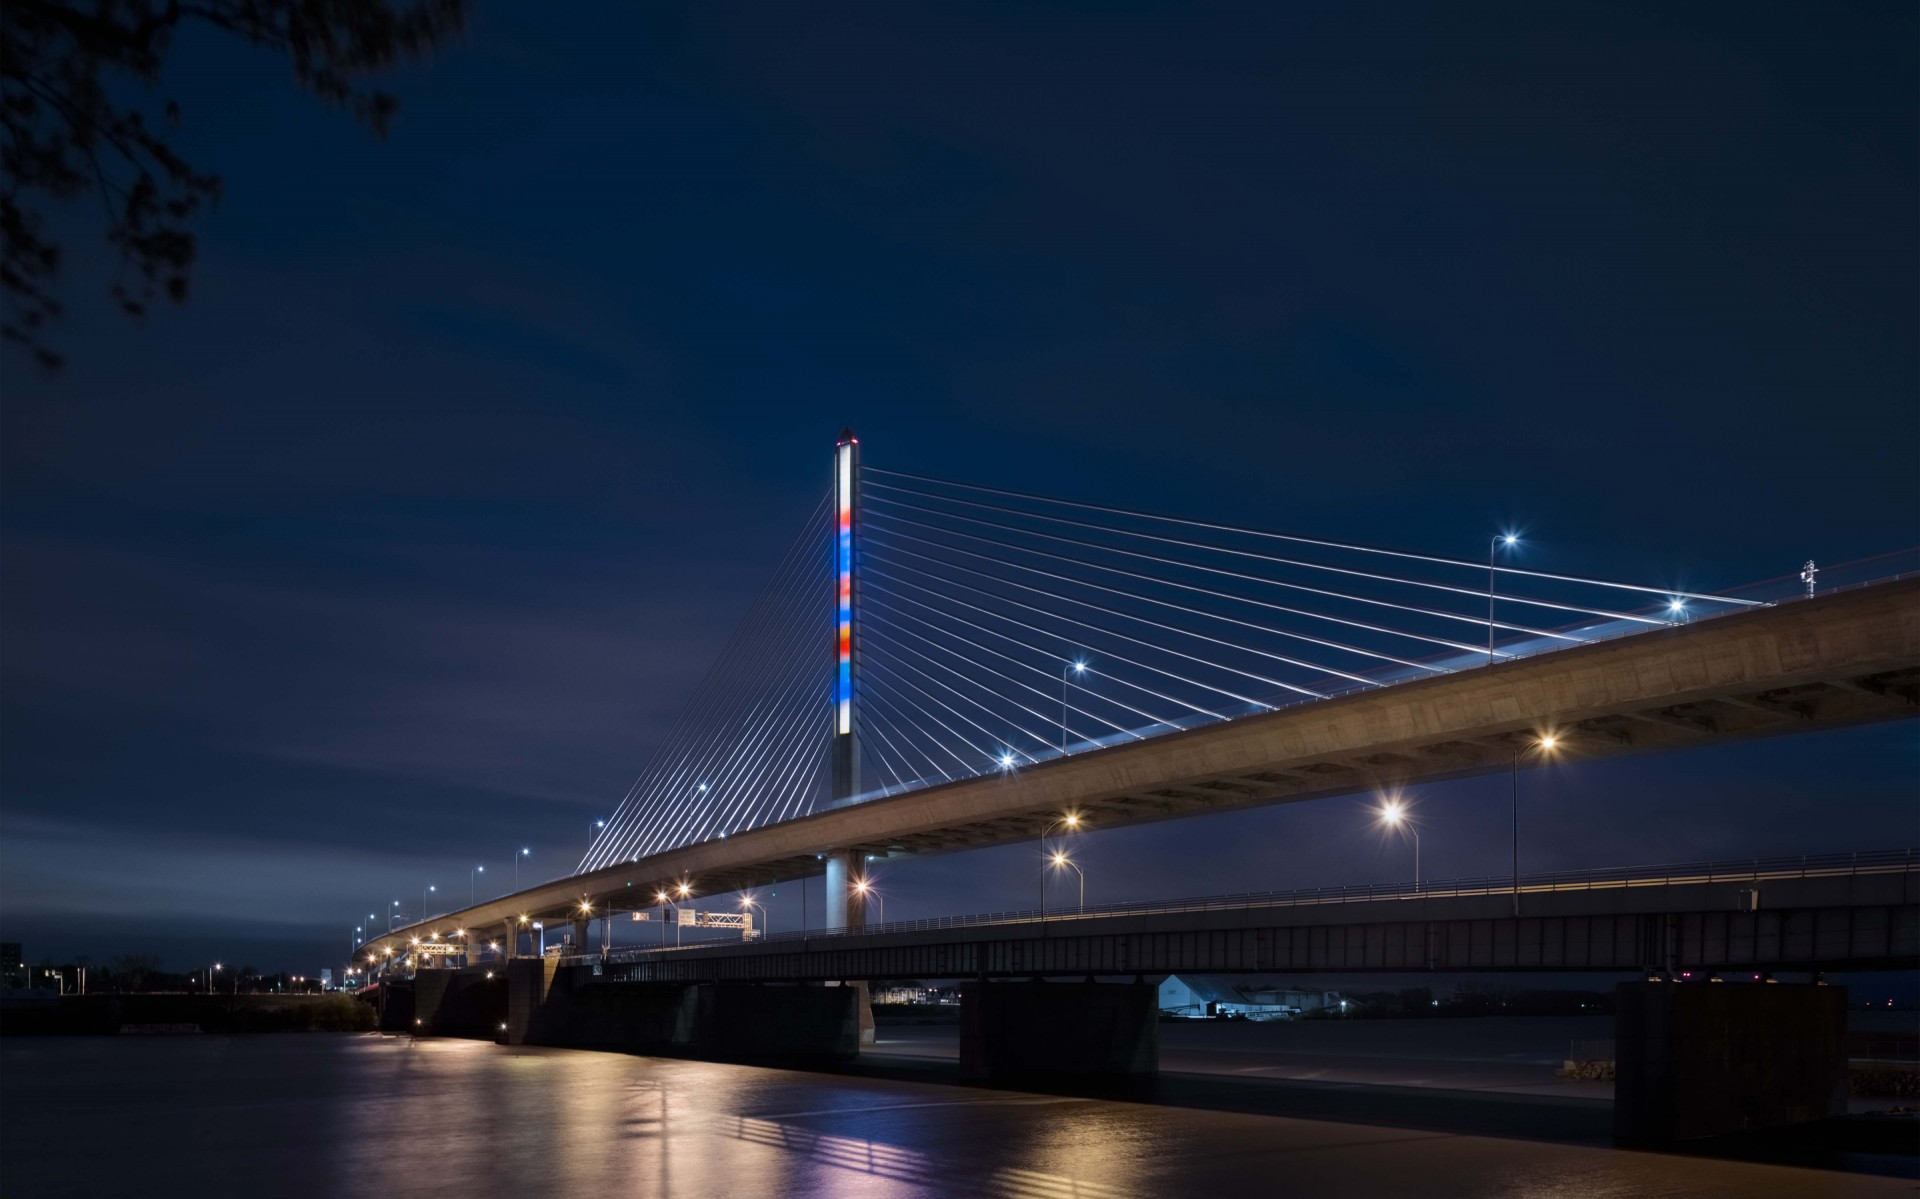 The Lumenfacade luminaires have reduced maintenance costs and increased the flexibility and controls of the bridge's lighting. – Feinknopf Photography